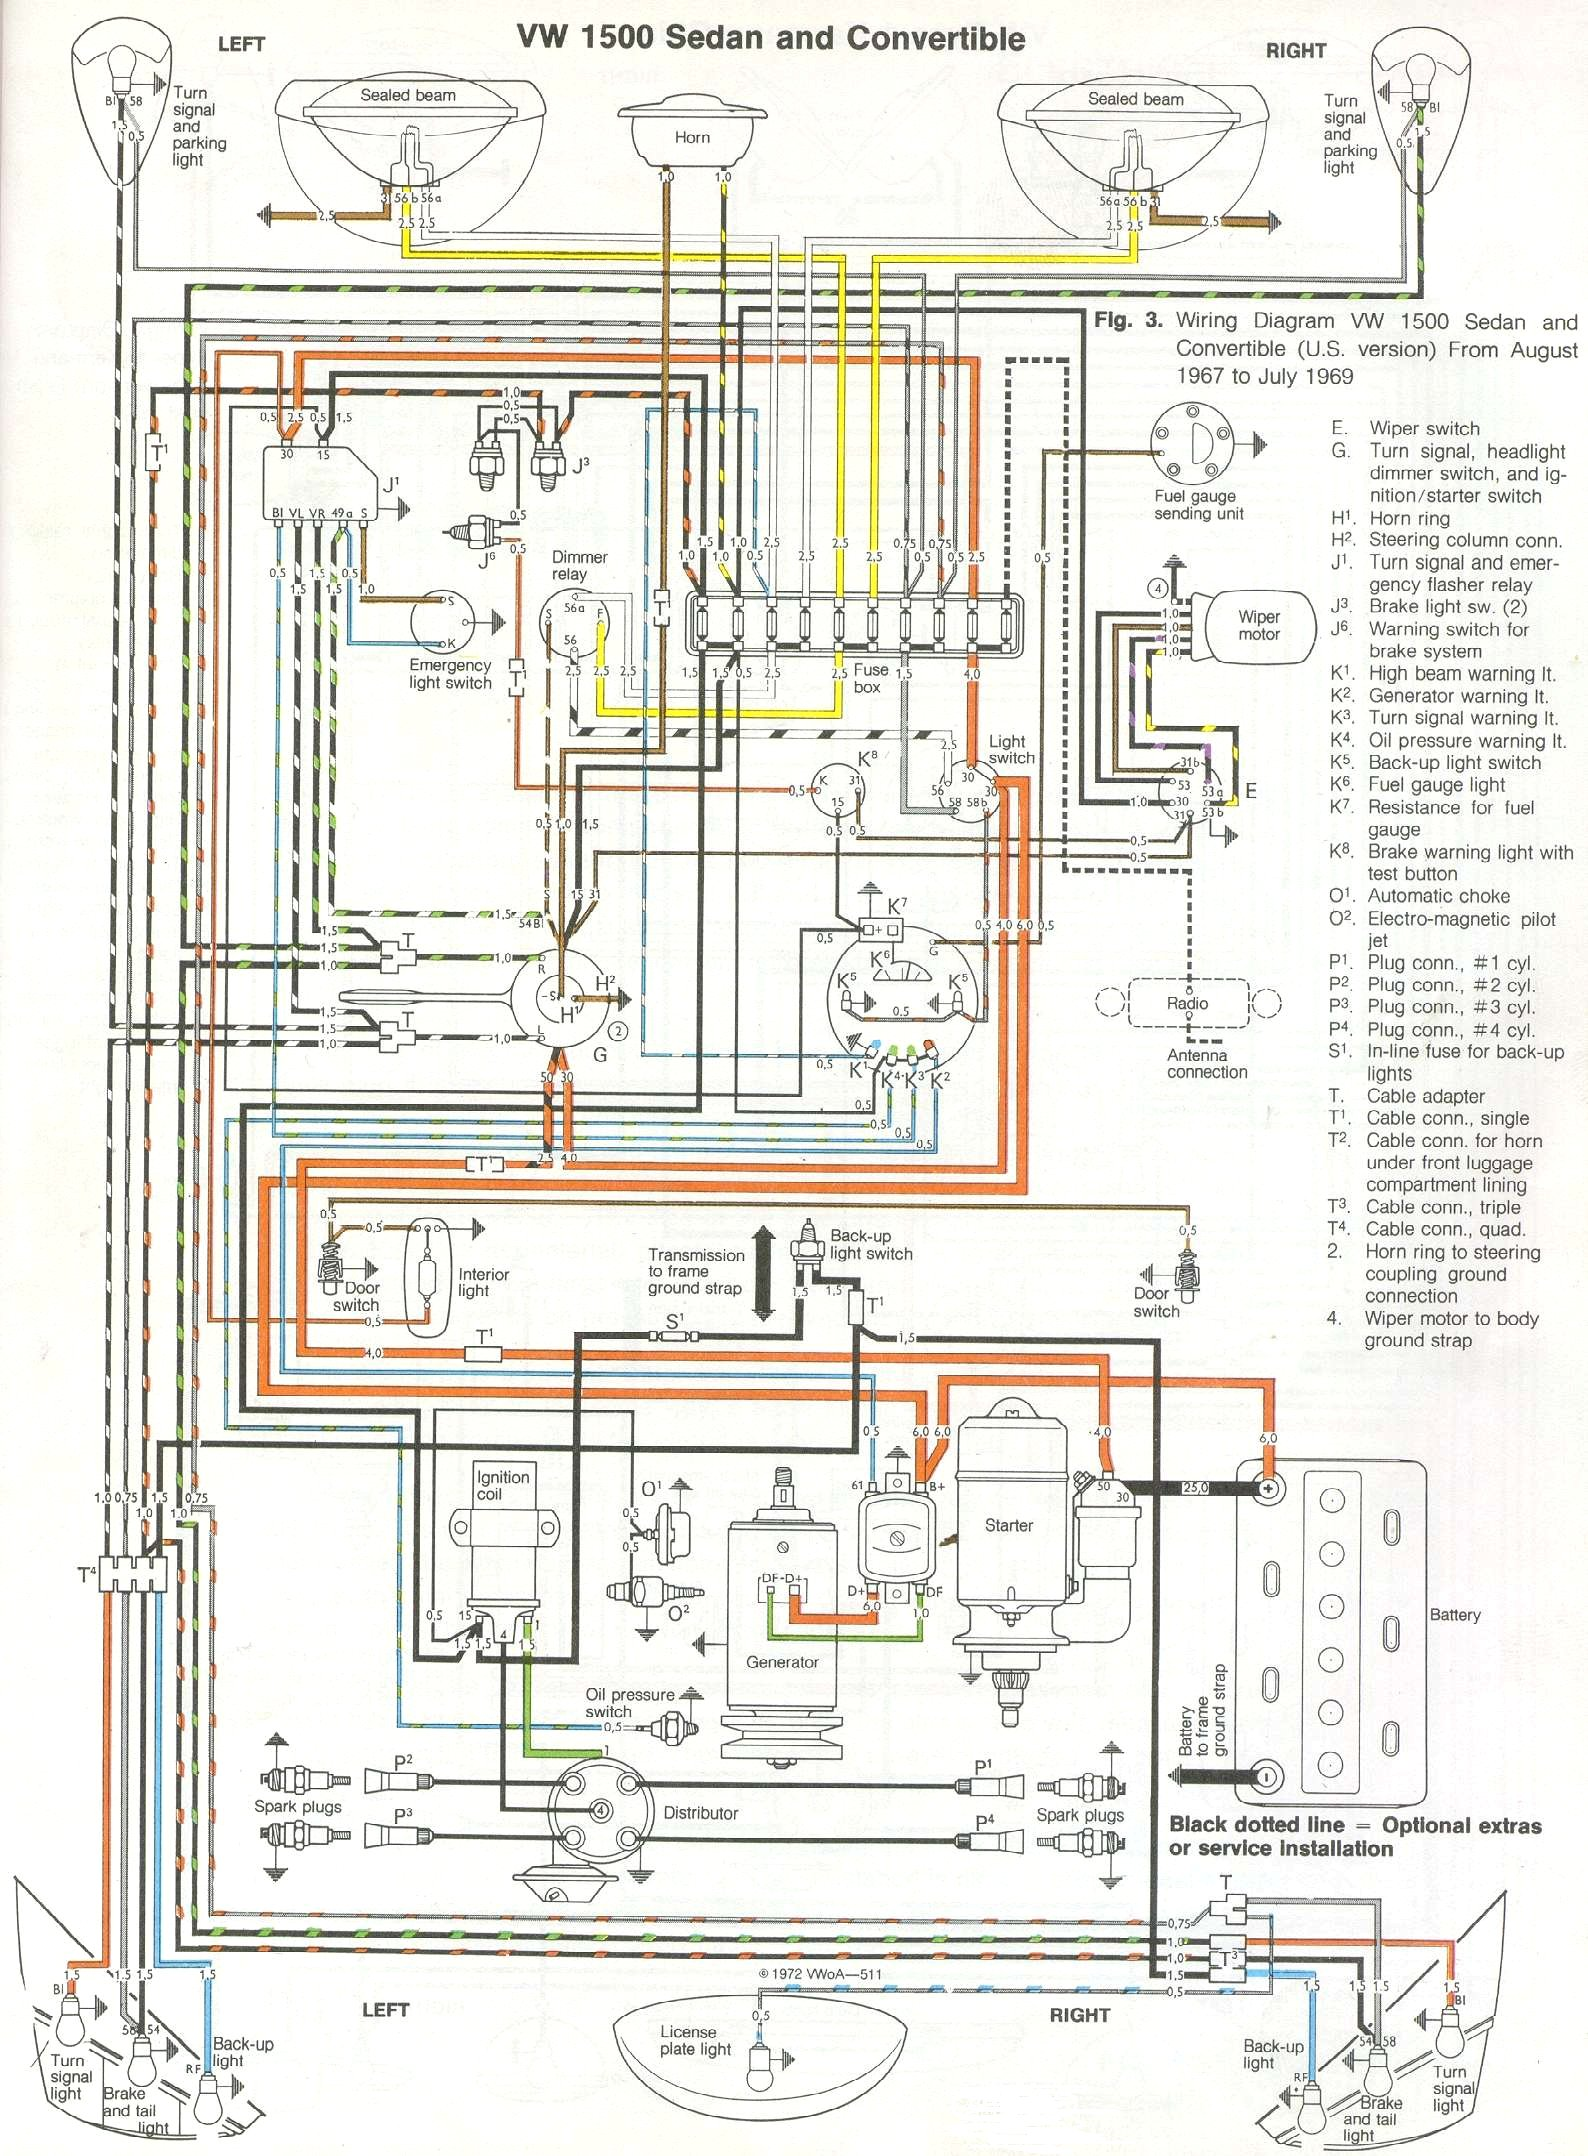 bug_6869 1969 71 beetle wiring diagram thegoldenbug com vw wiring diagrams at webbmarketing.co